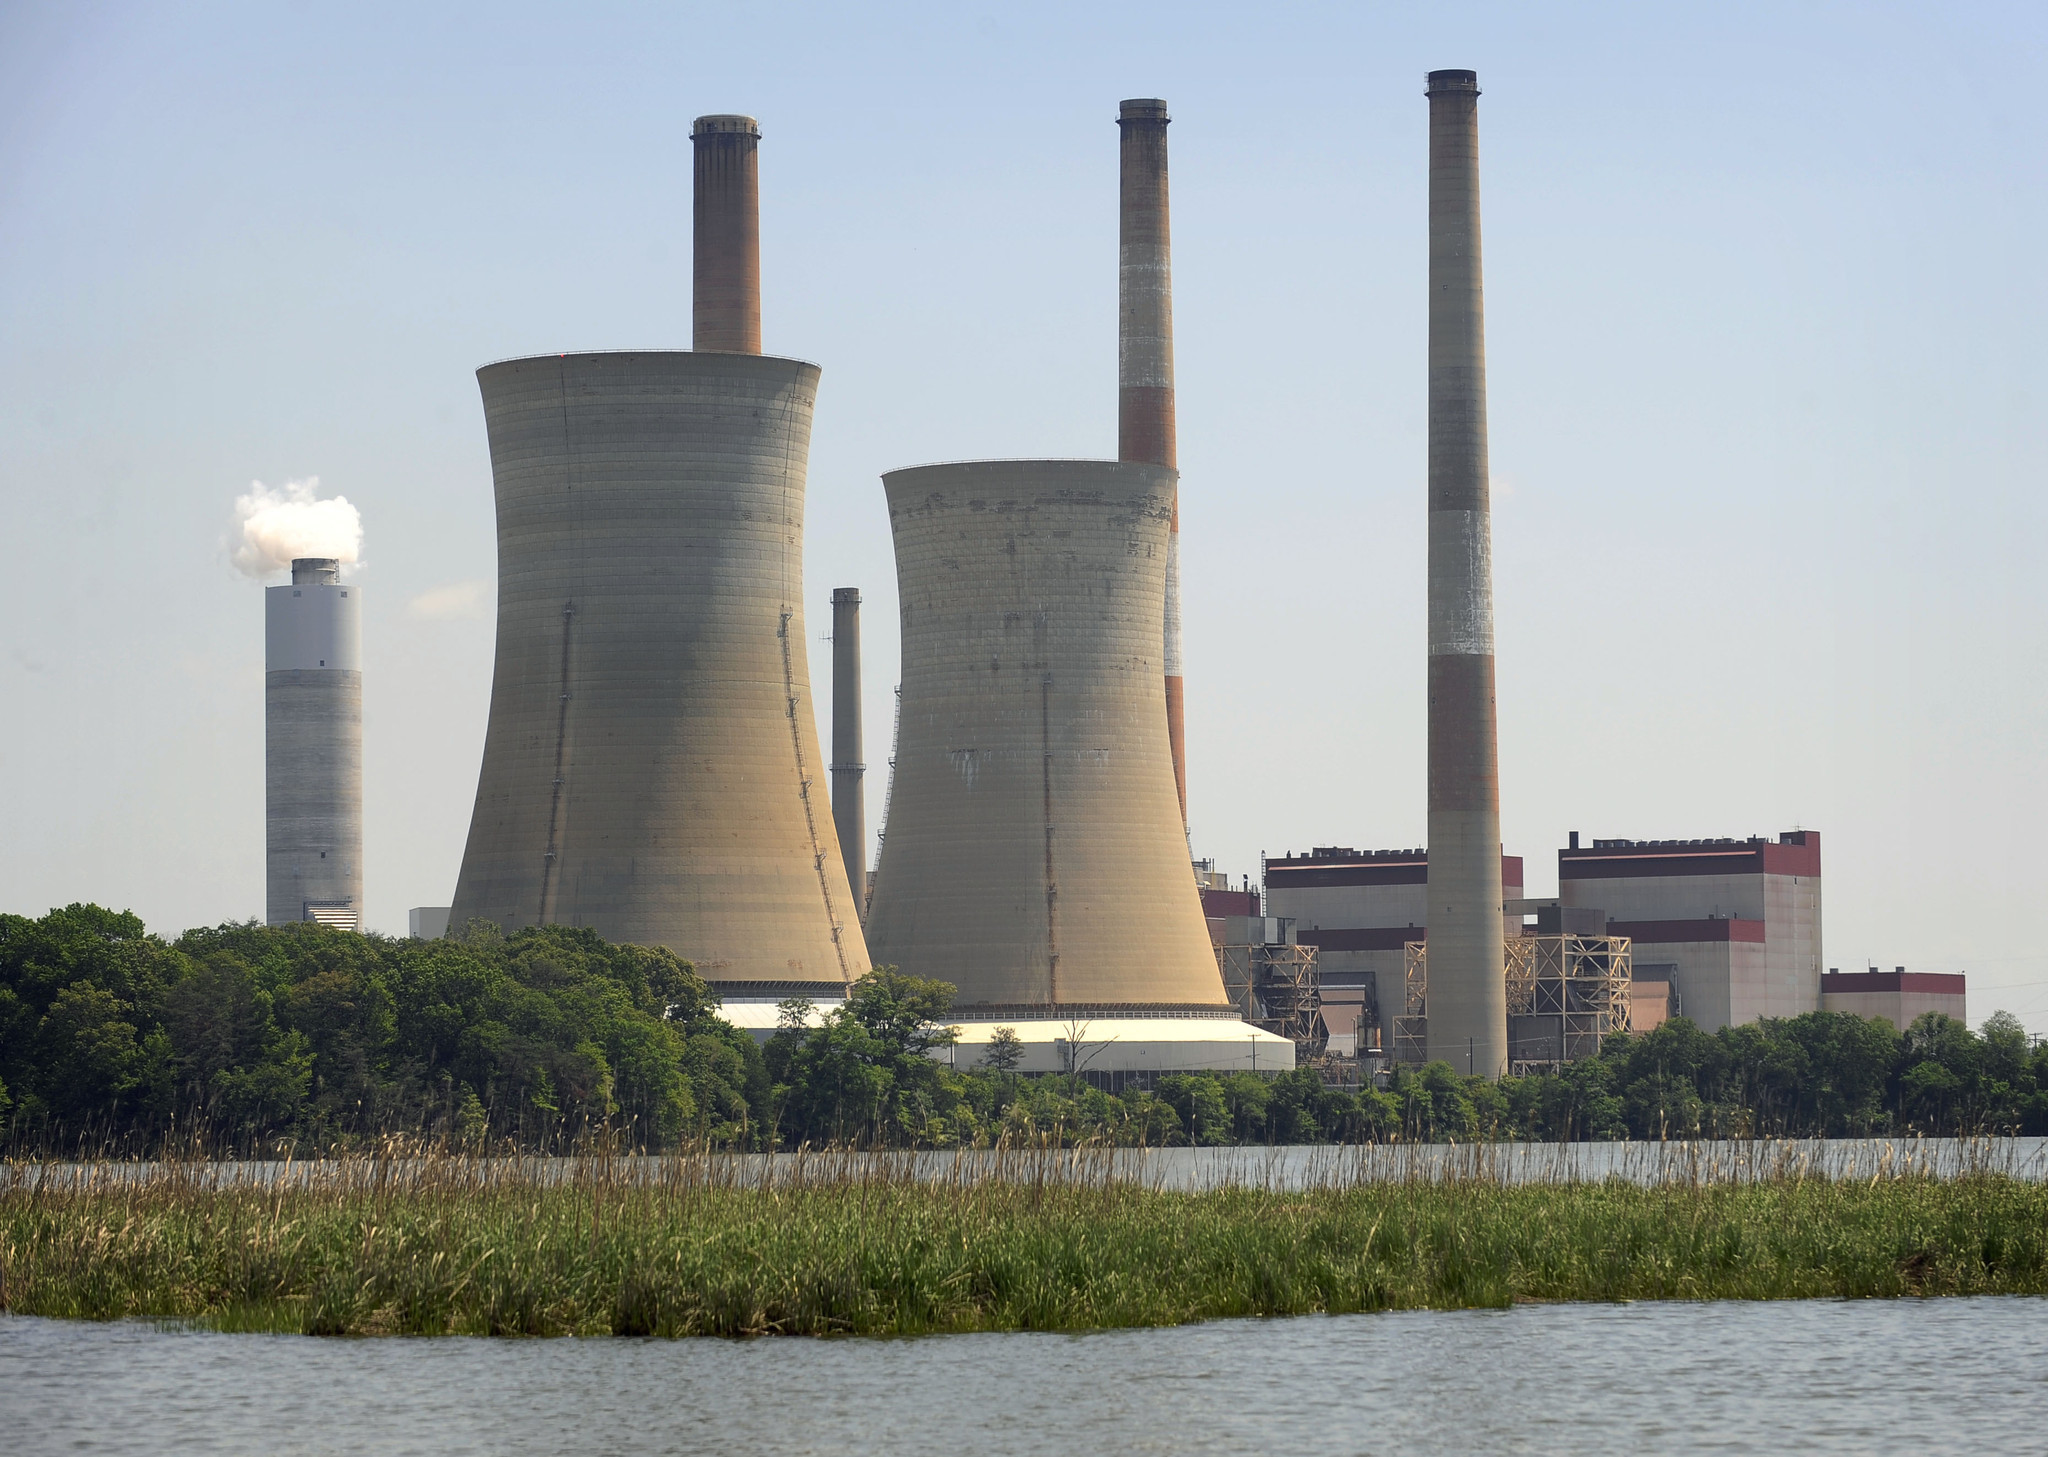 Coal fired units at 2 Md power plants slated to retire